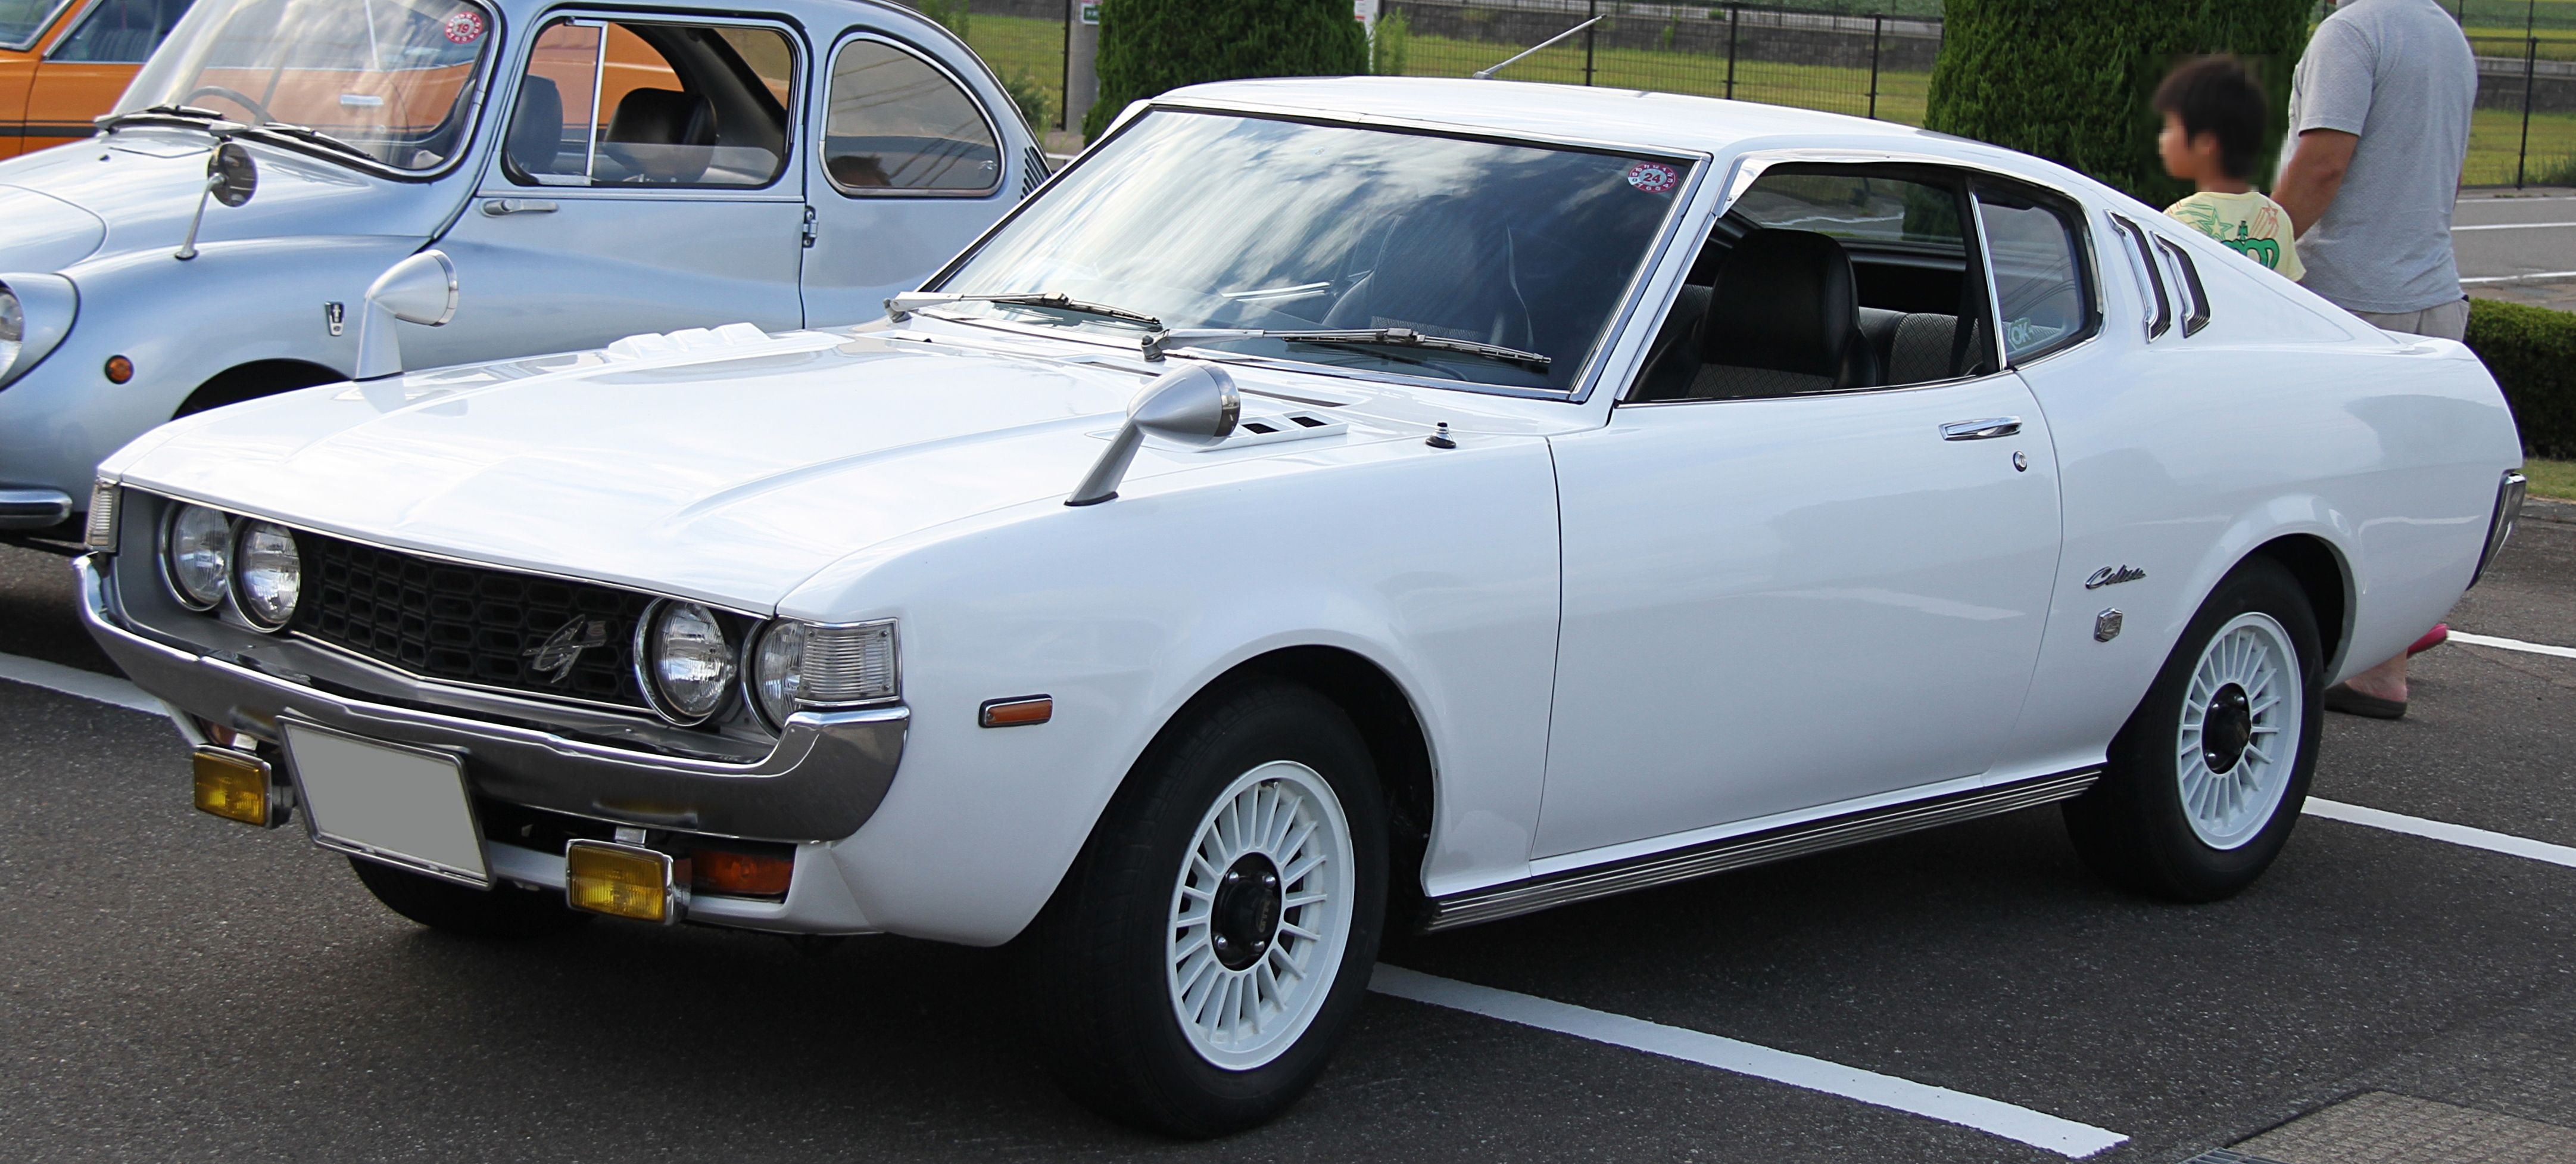 1973 Toyota Celica Information And Photos Momentcar For Sale 3